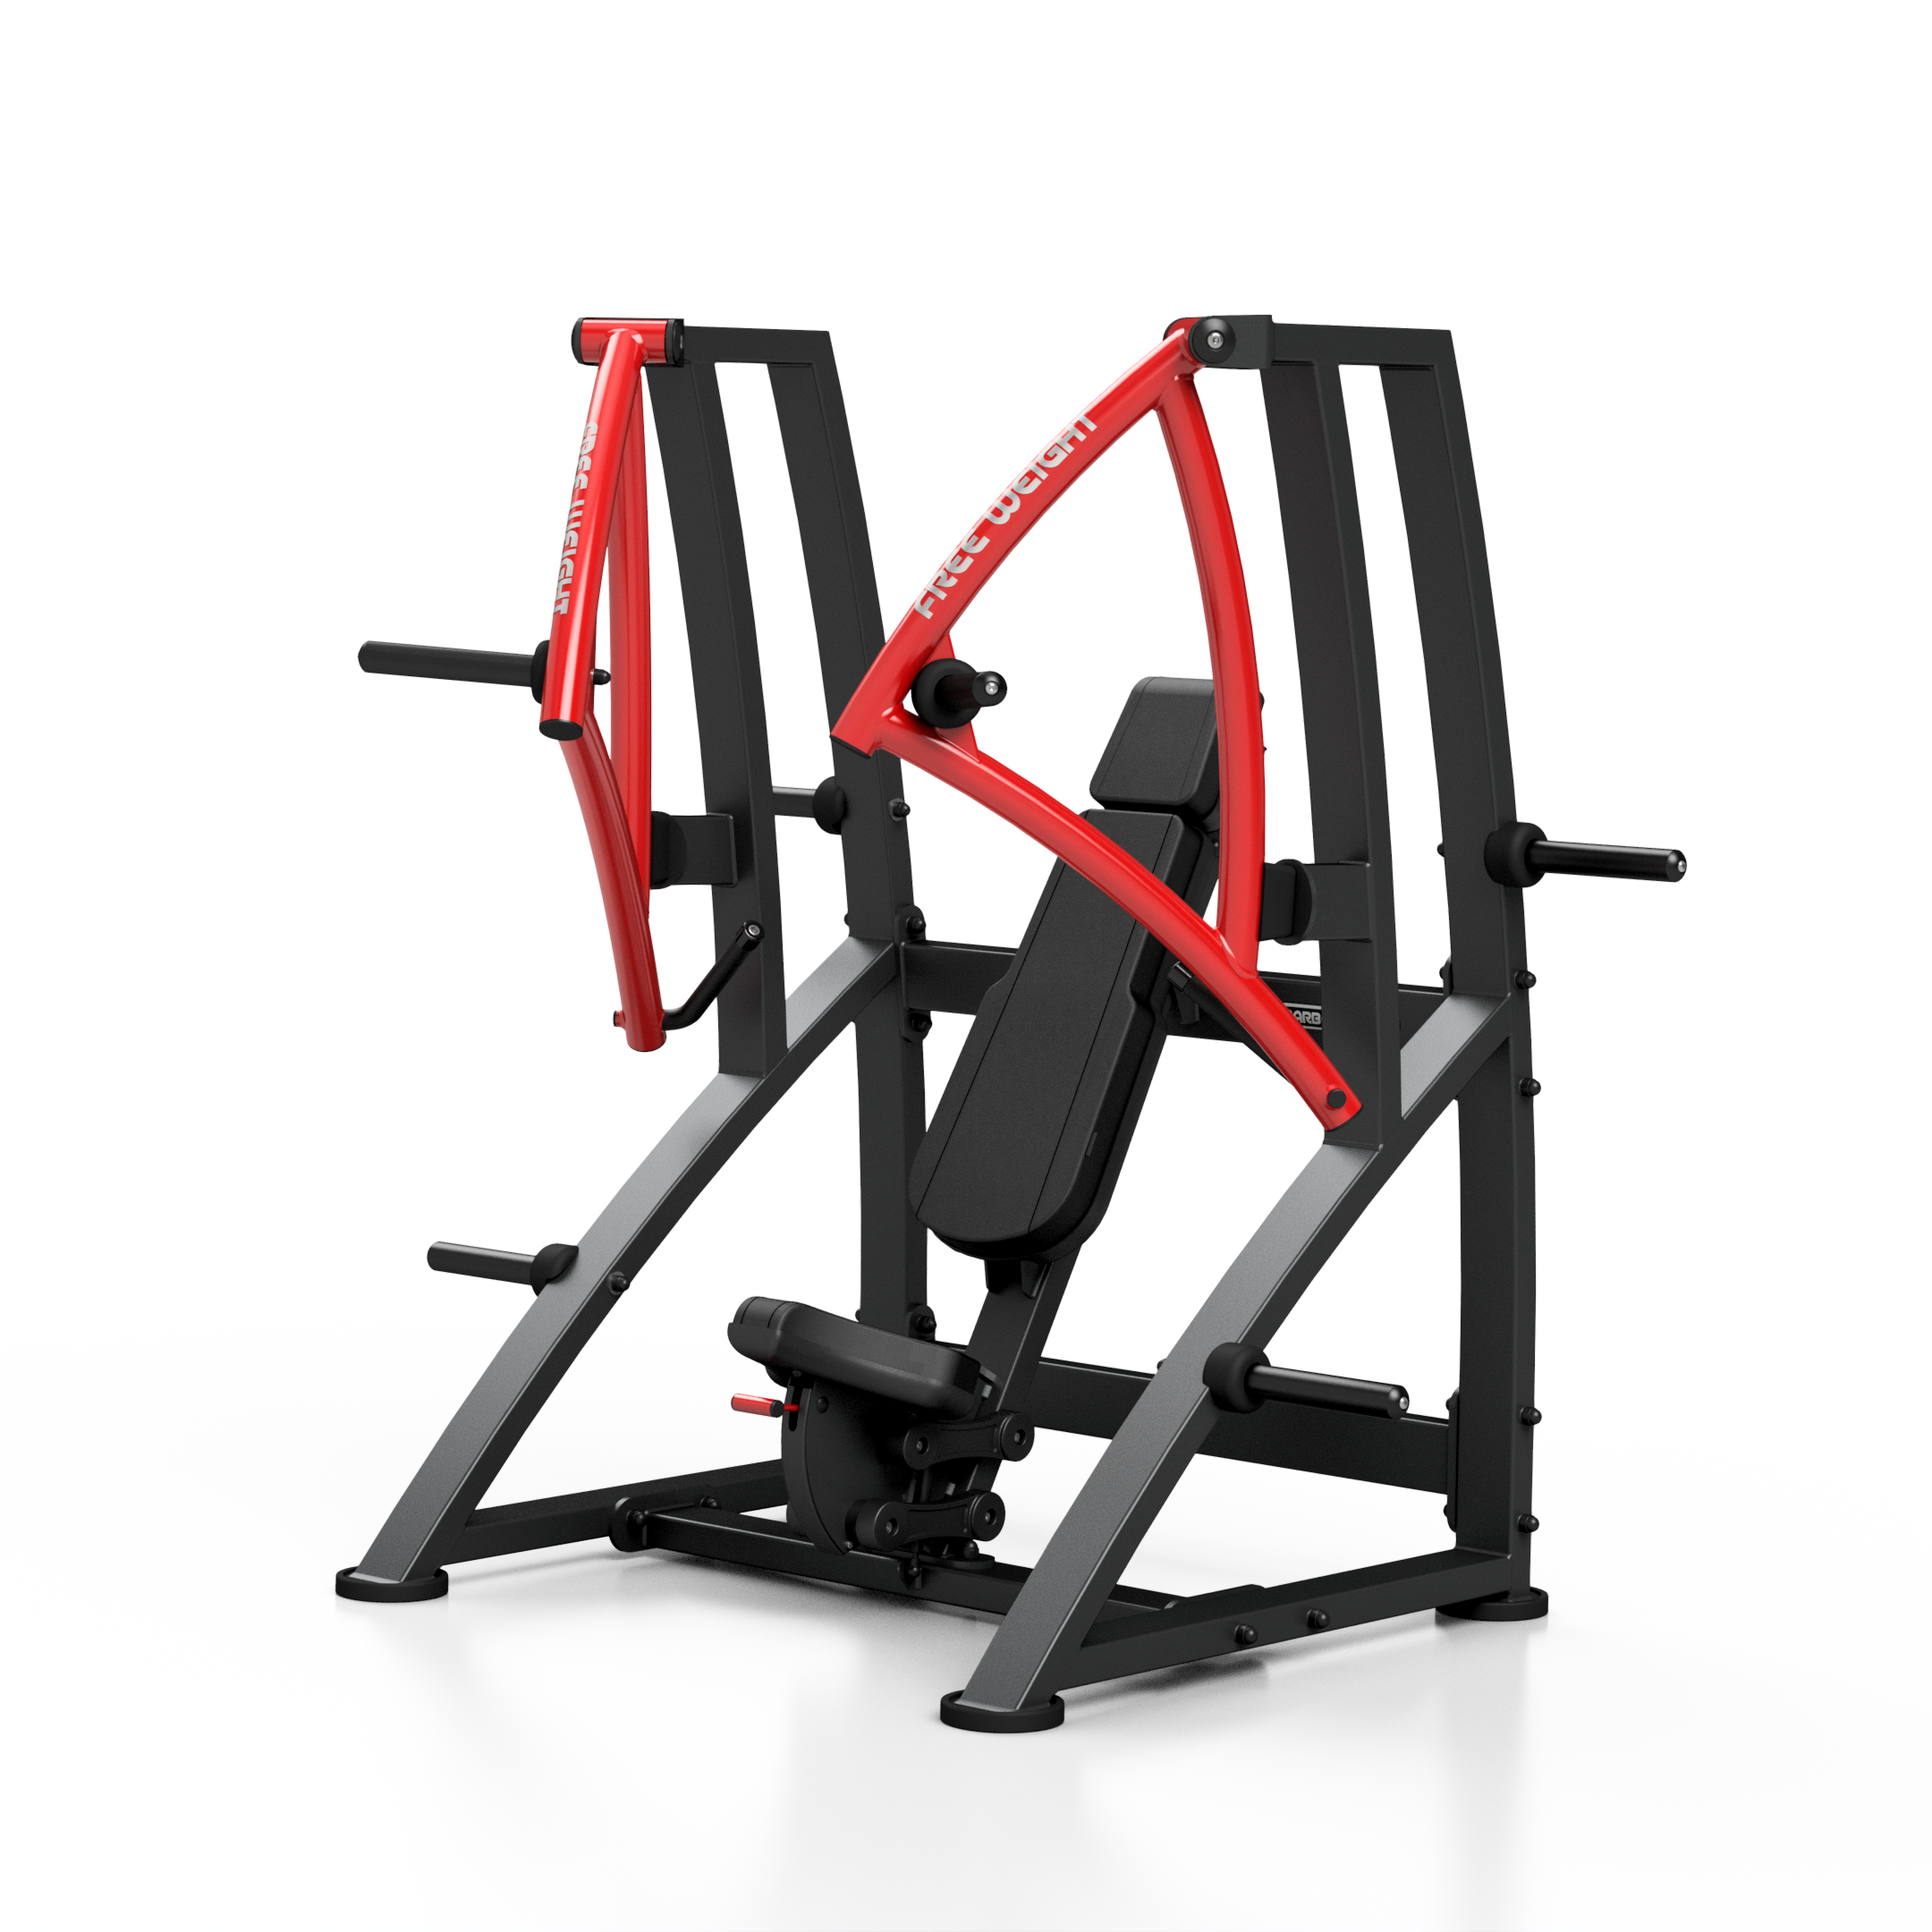 Stroj na prsné svaly Chest Press MF-U016 Marbo Sport